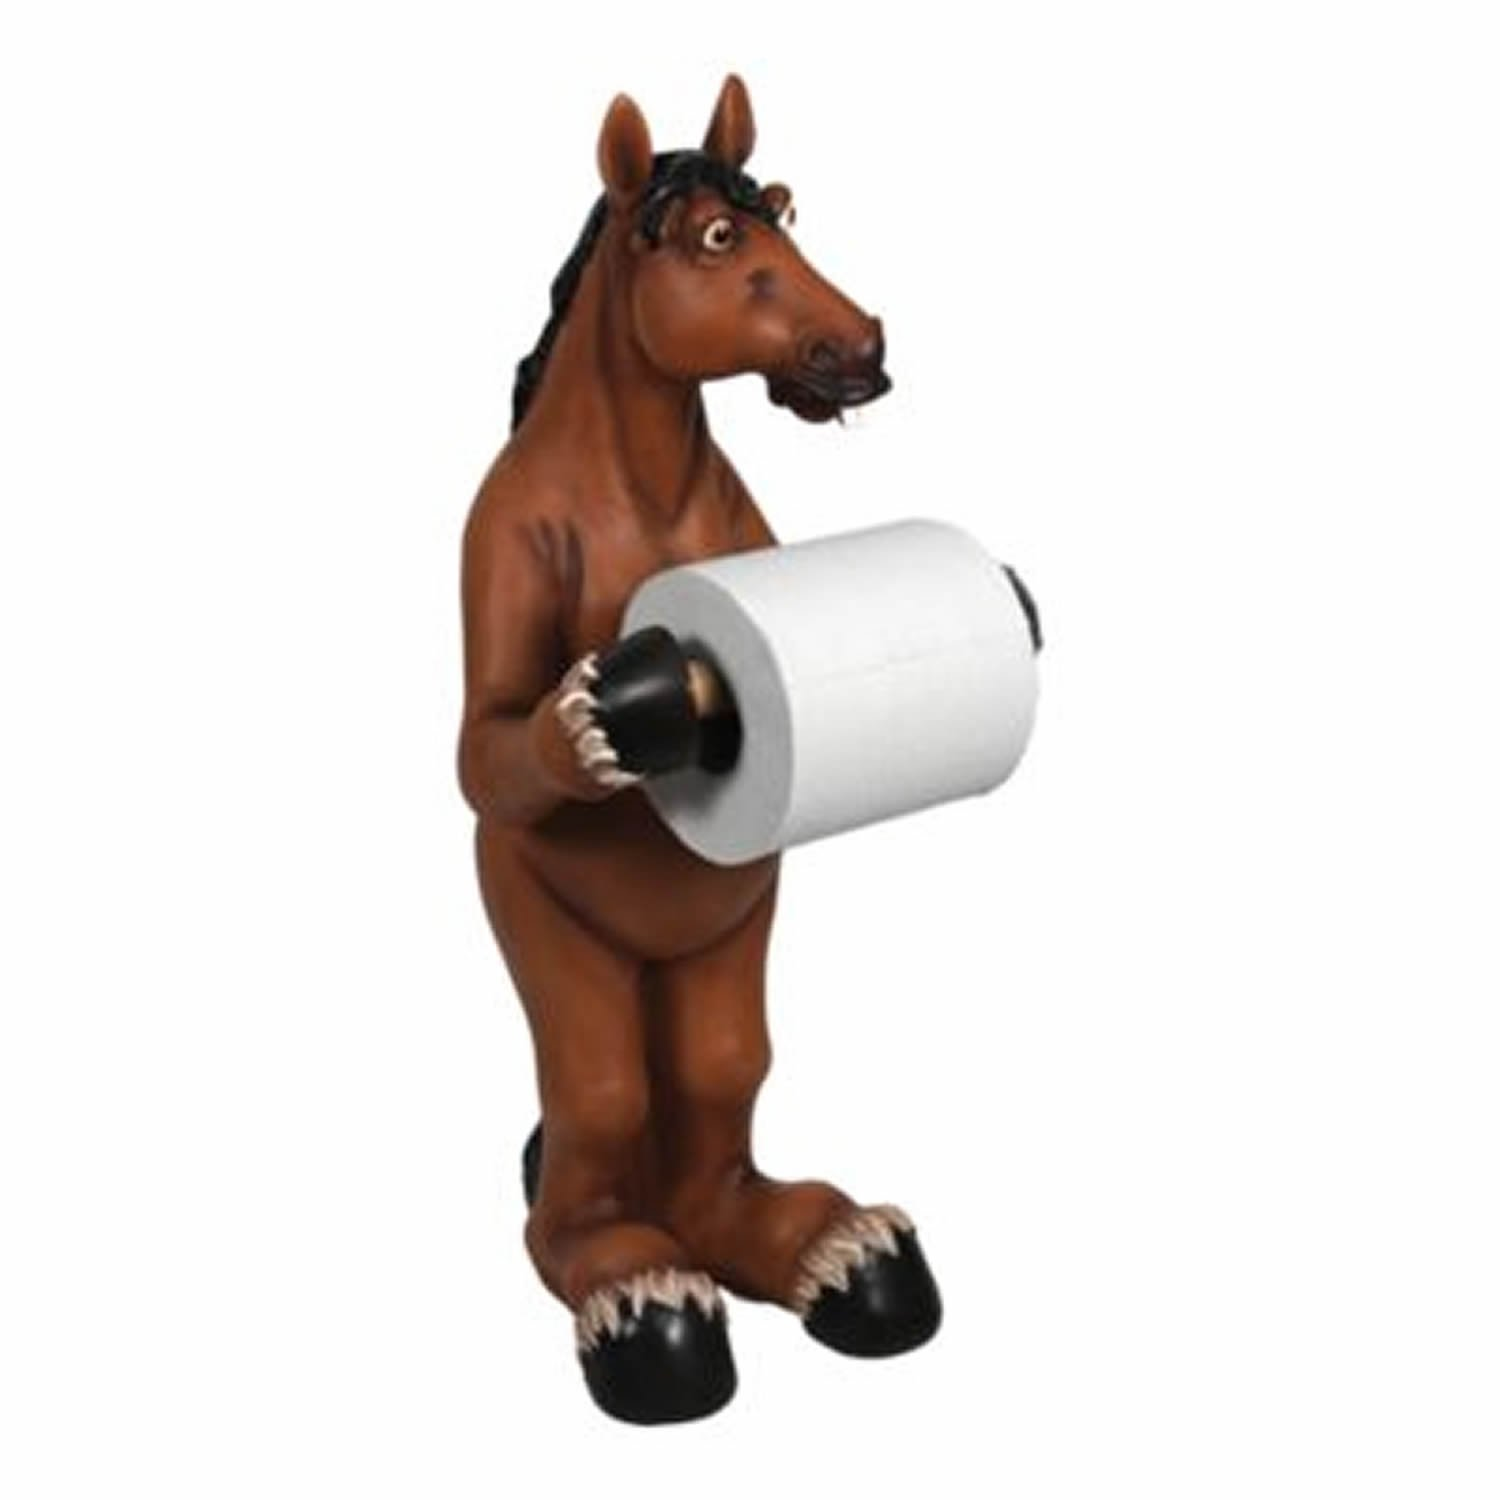 Amazon Rivers Edge Products Standing Horse Toilet Paper